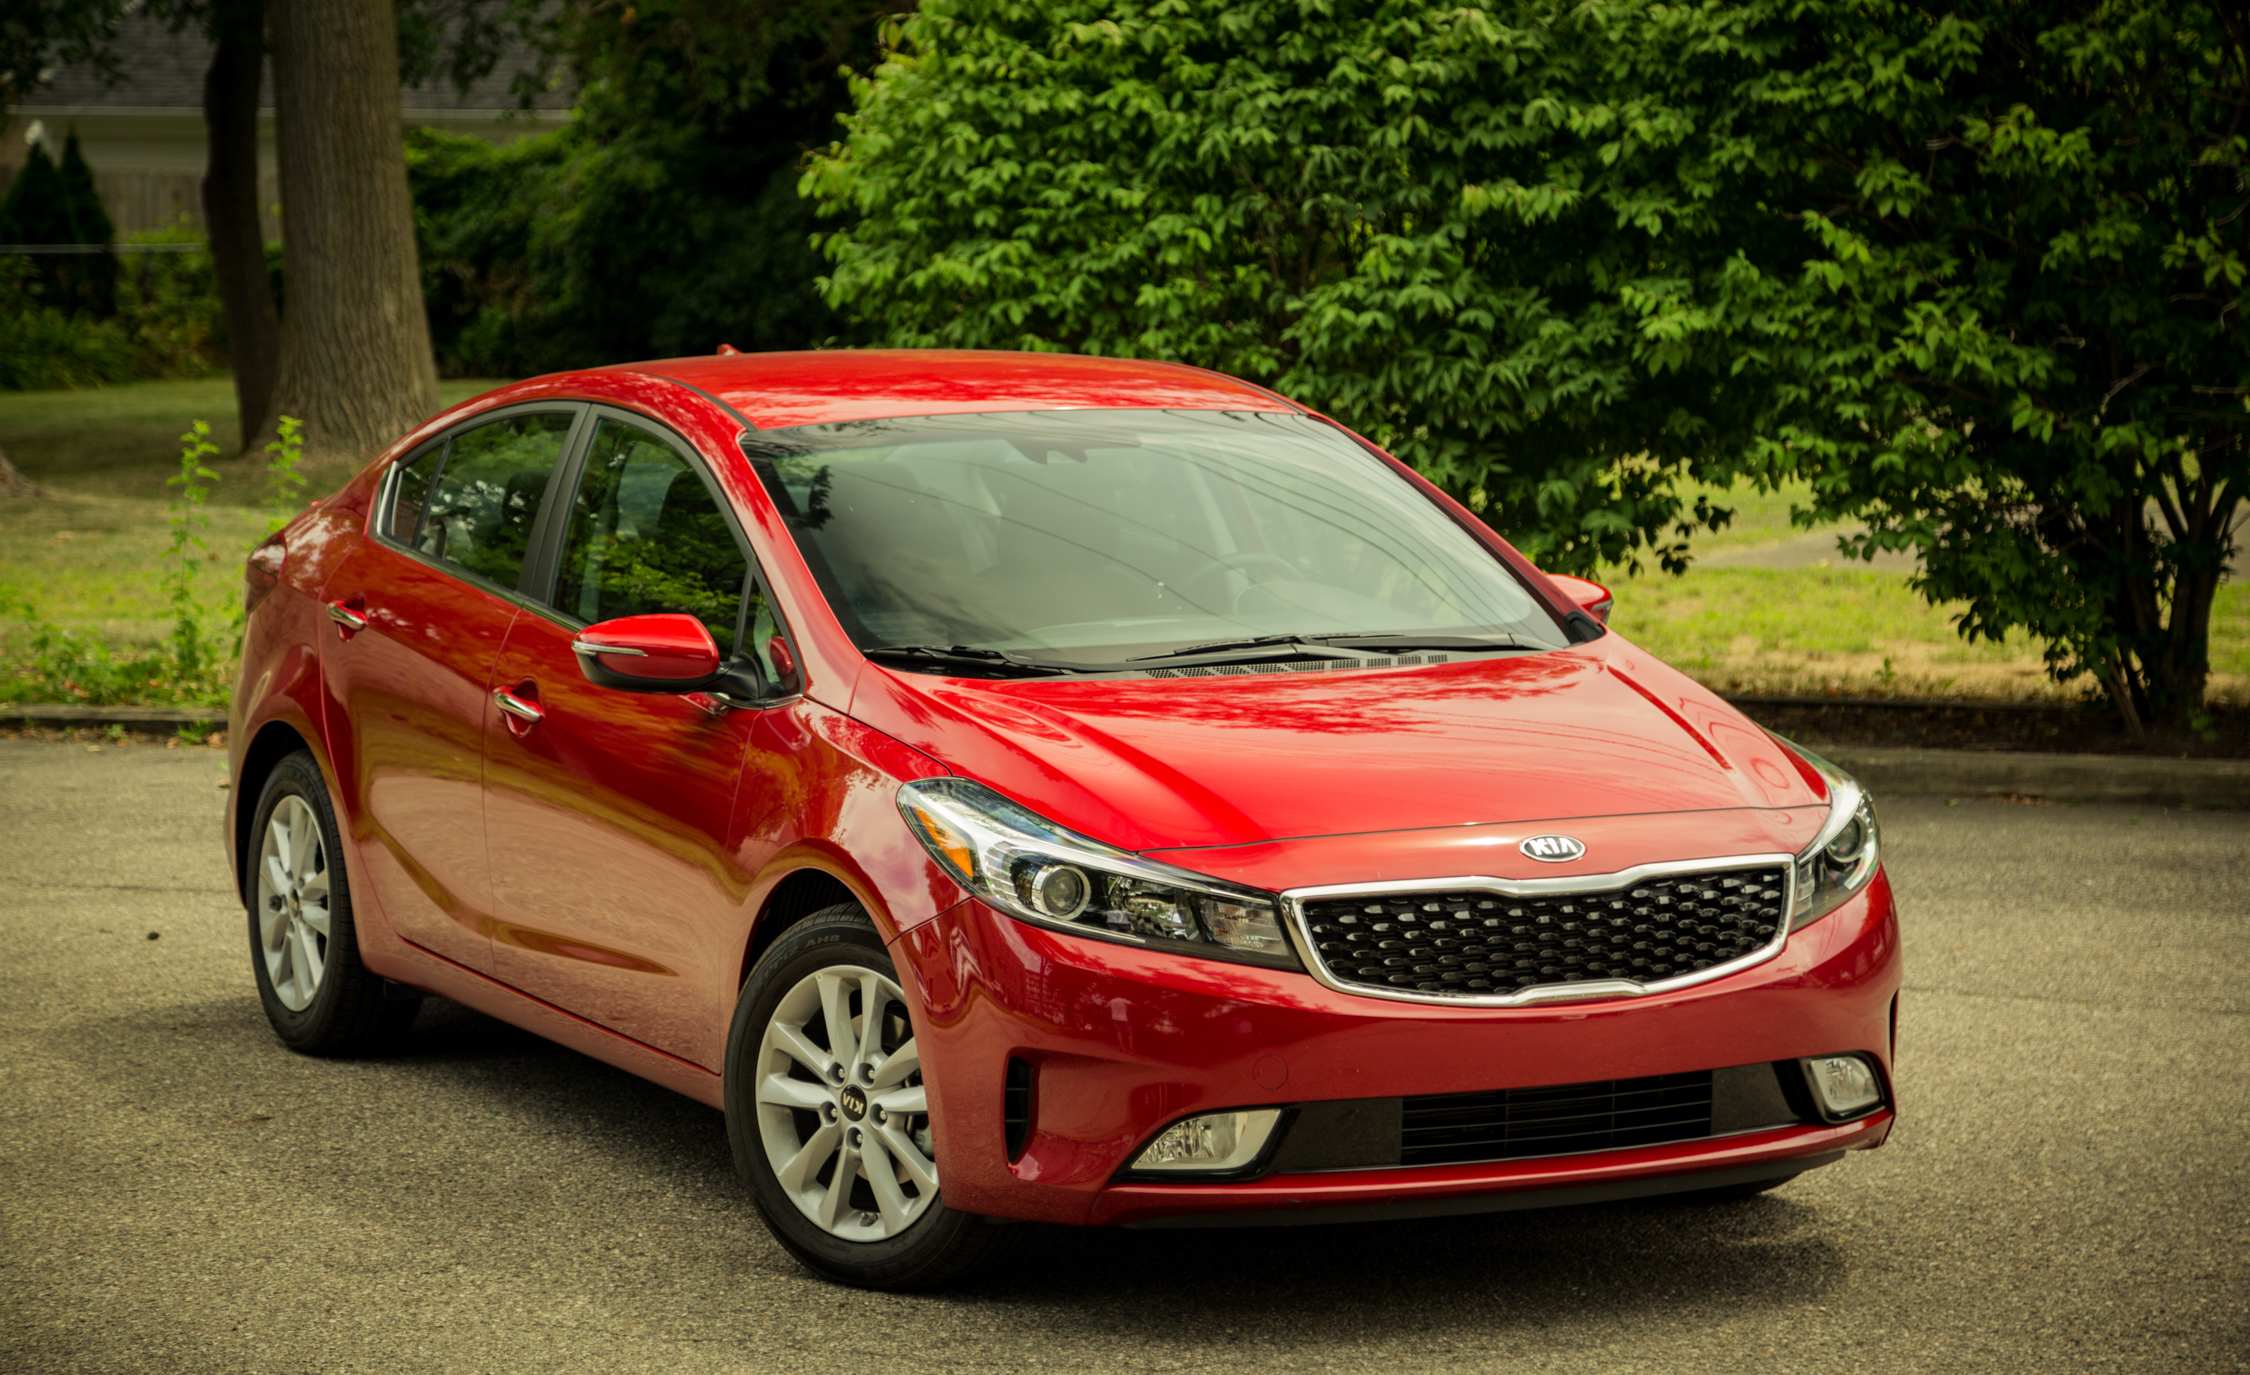 2017 Kia Forte Exterior (Photo 2 of 13)